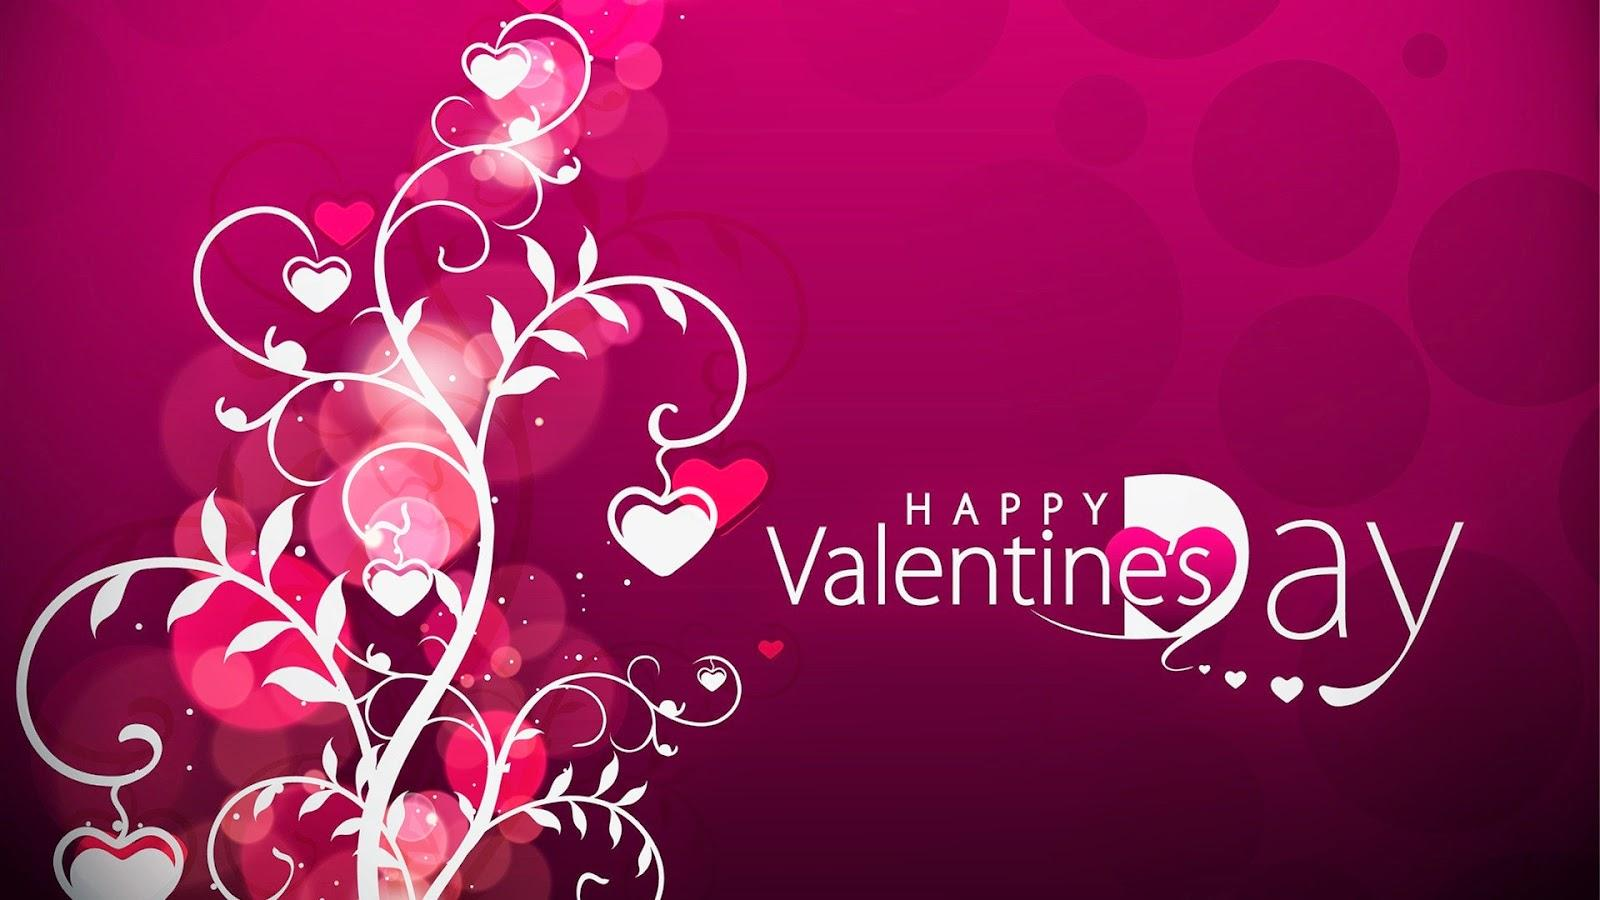 15 New Valentine's Day Desktop Wallpapers for 2015